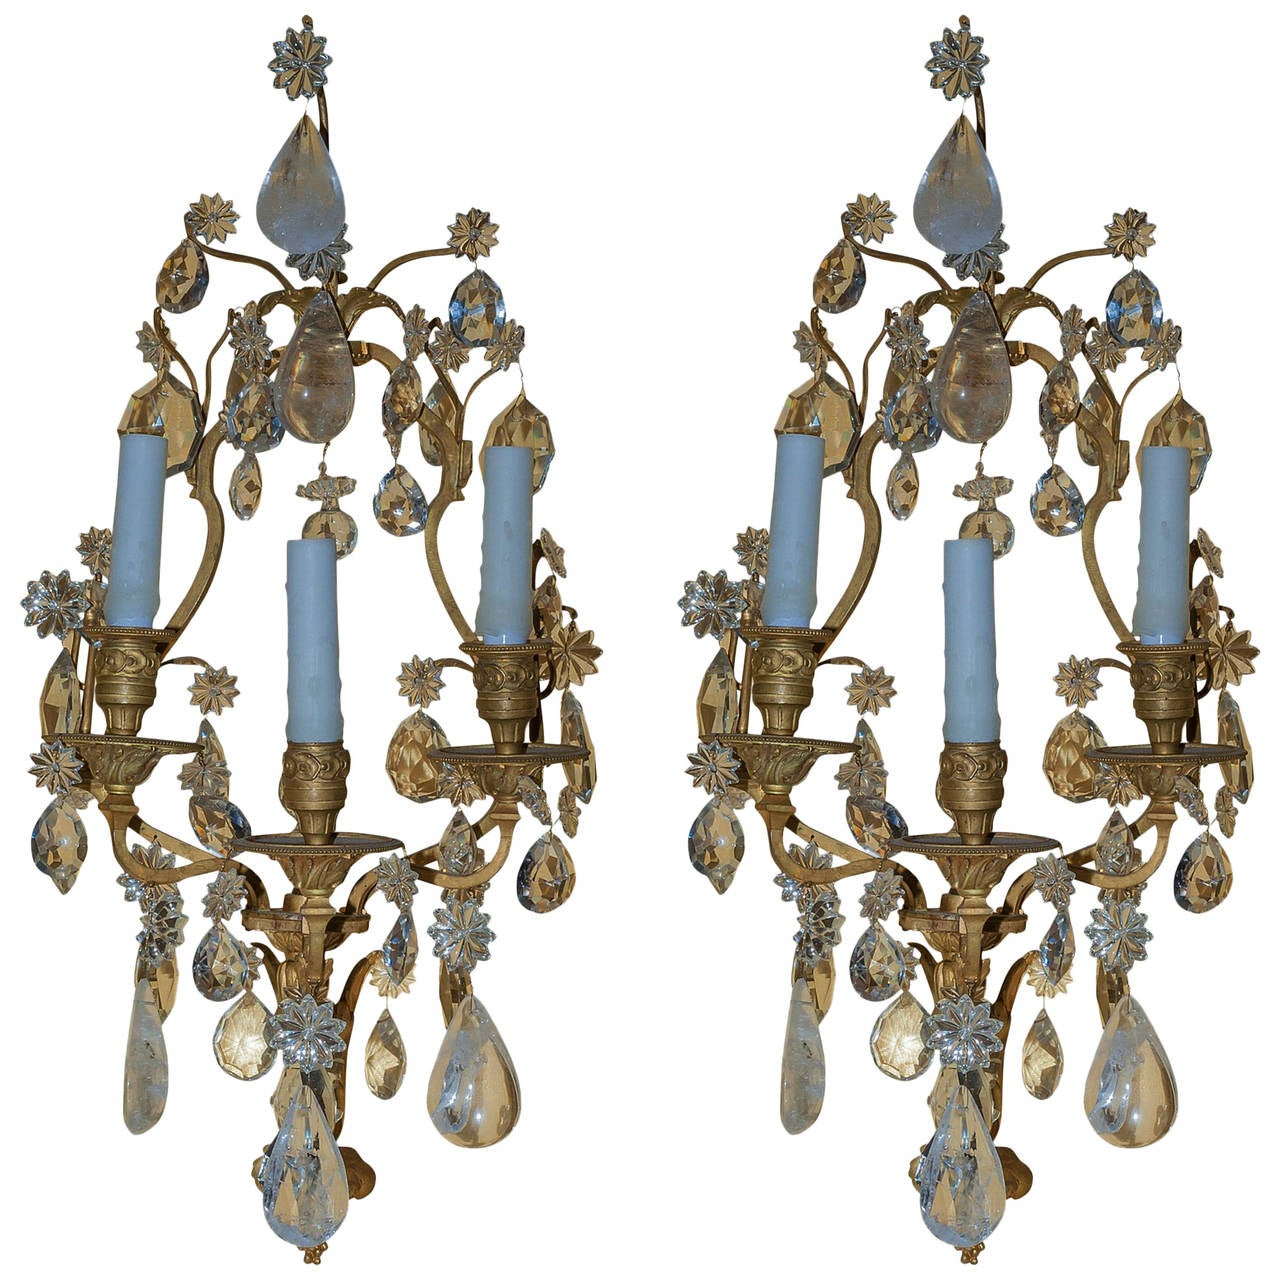 Rock Crystal Wall Sconces : Pair of Rock Crystal and Gilt Bronze Three-Arm Wall Light Sconces at 1stdibs